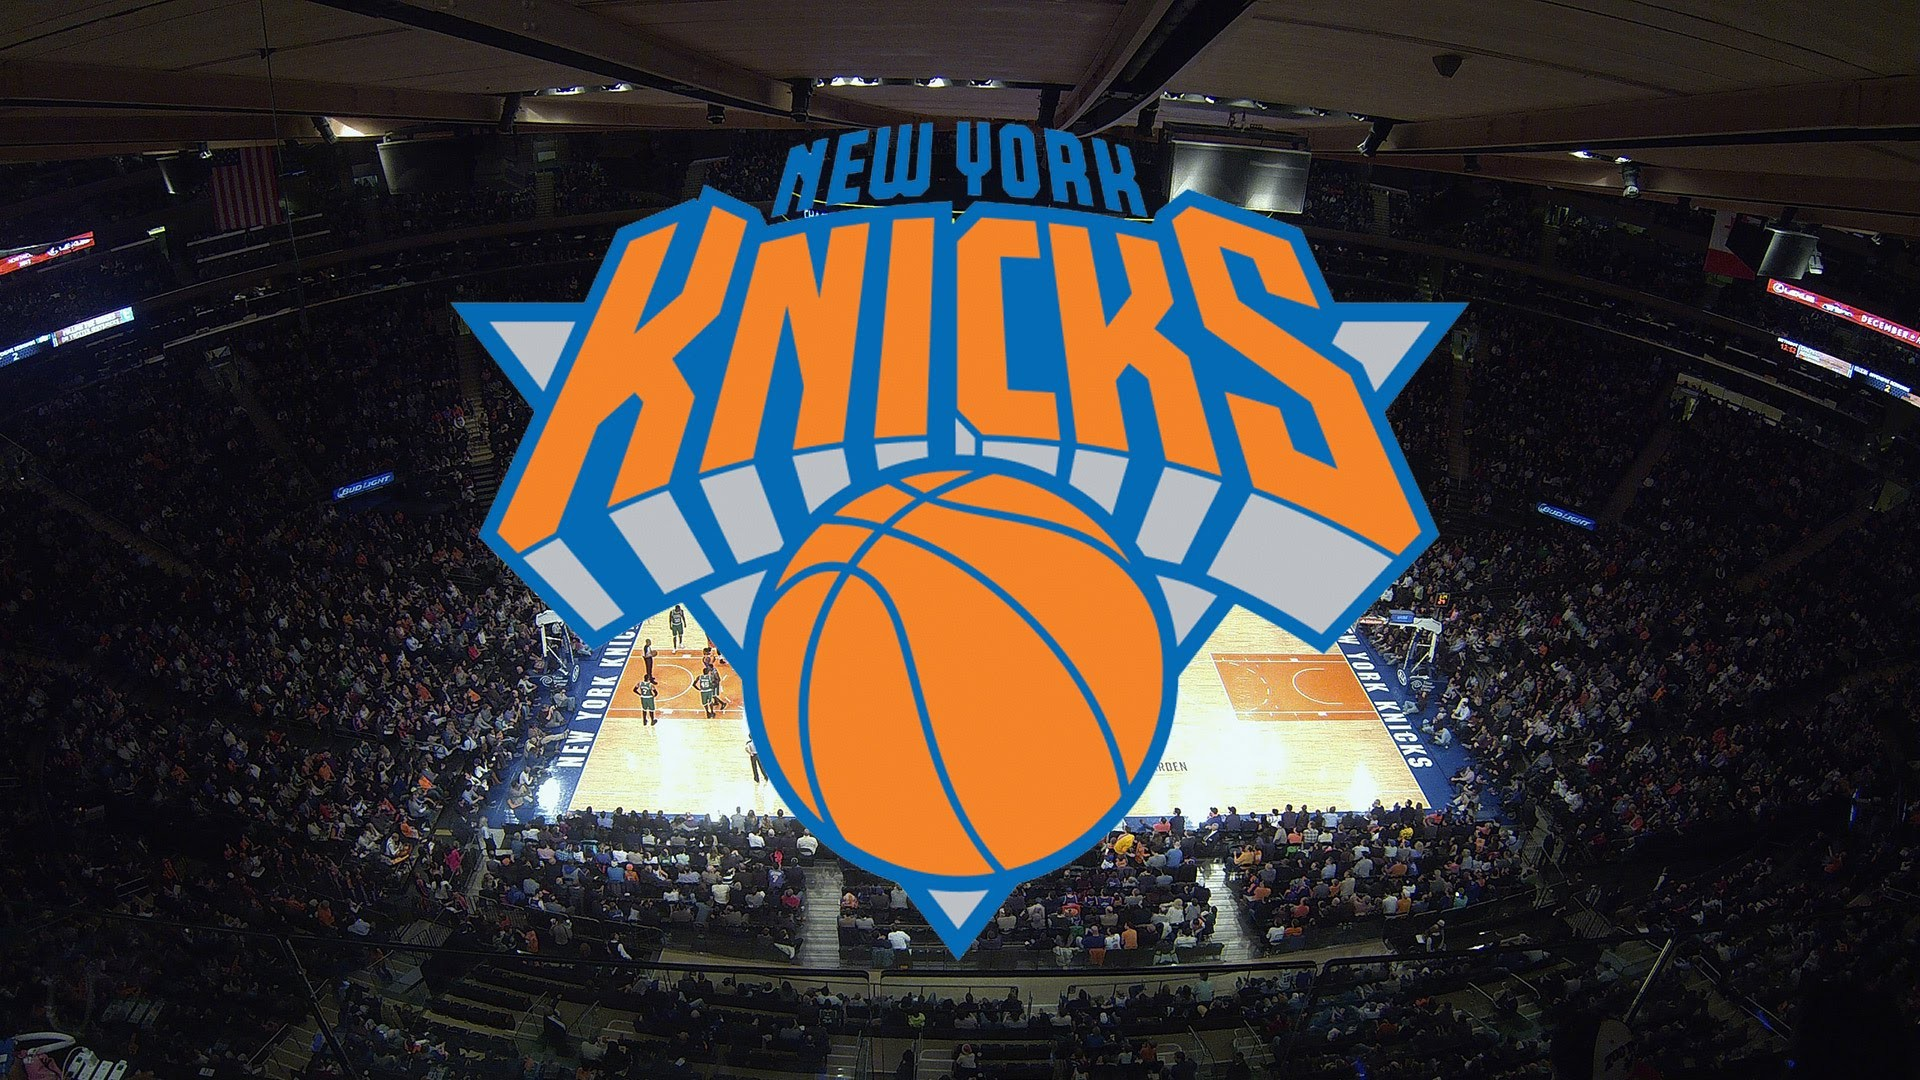 NY Knicks For Desktop Wallpaper with image dimensions 1920x1080 pixel. You can make this wallpaper for your Desktop Computer Backgrounds, Windows or Mac Screensavers, iPhone Lock screen, Tablet or Android and another Mobile Phone device